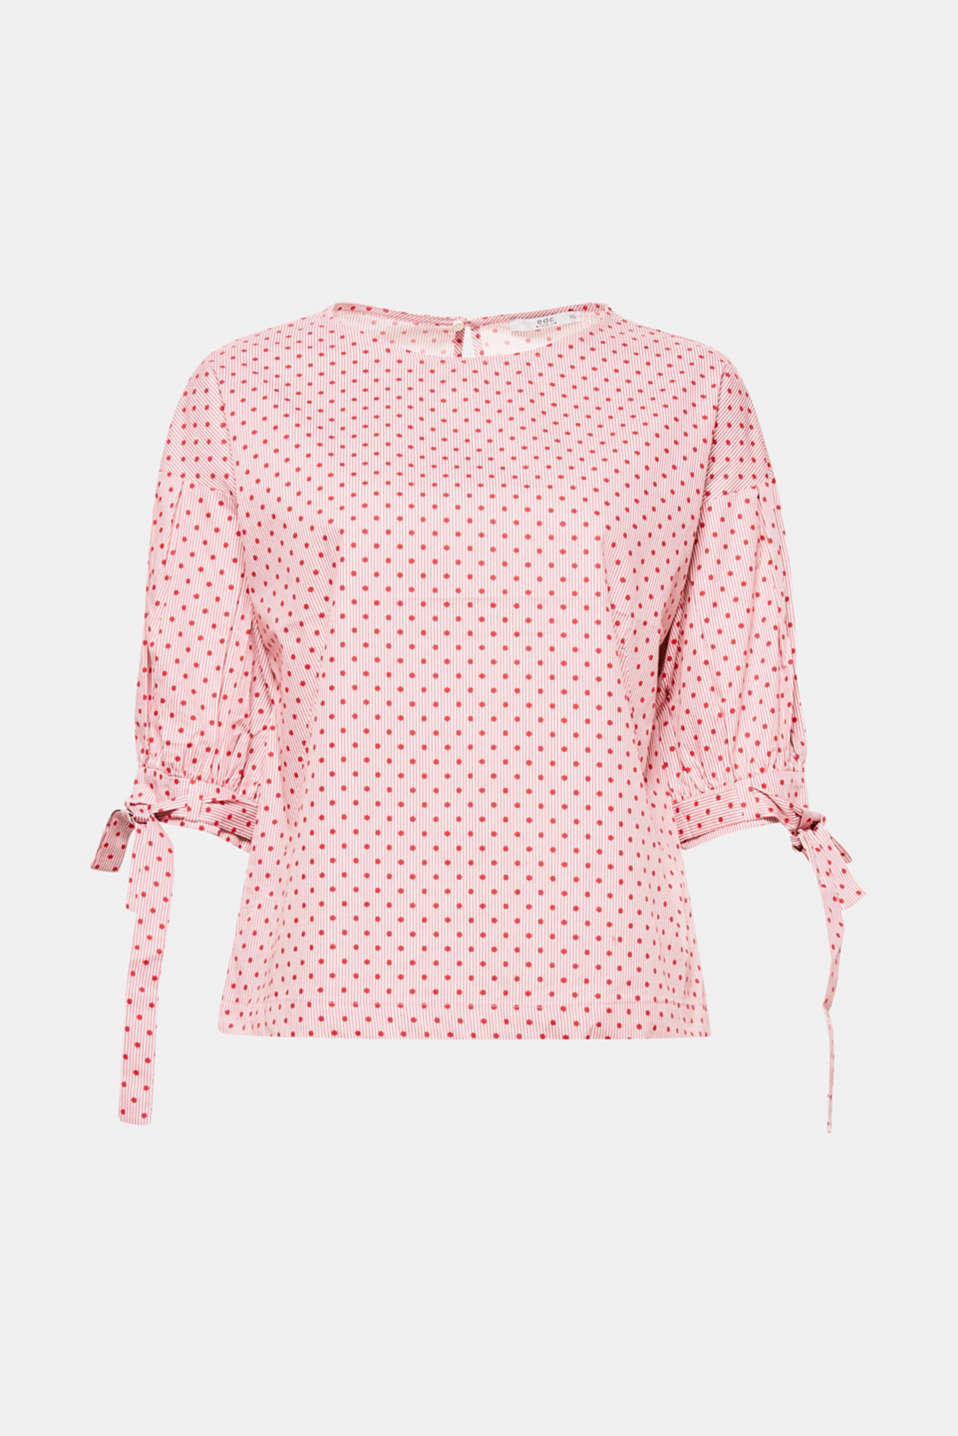 Attention to detail! This blouse is defined by its charming polka dot and stripe print and pretty ties.